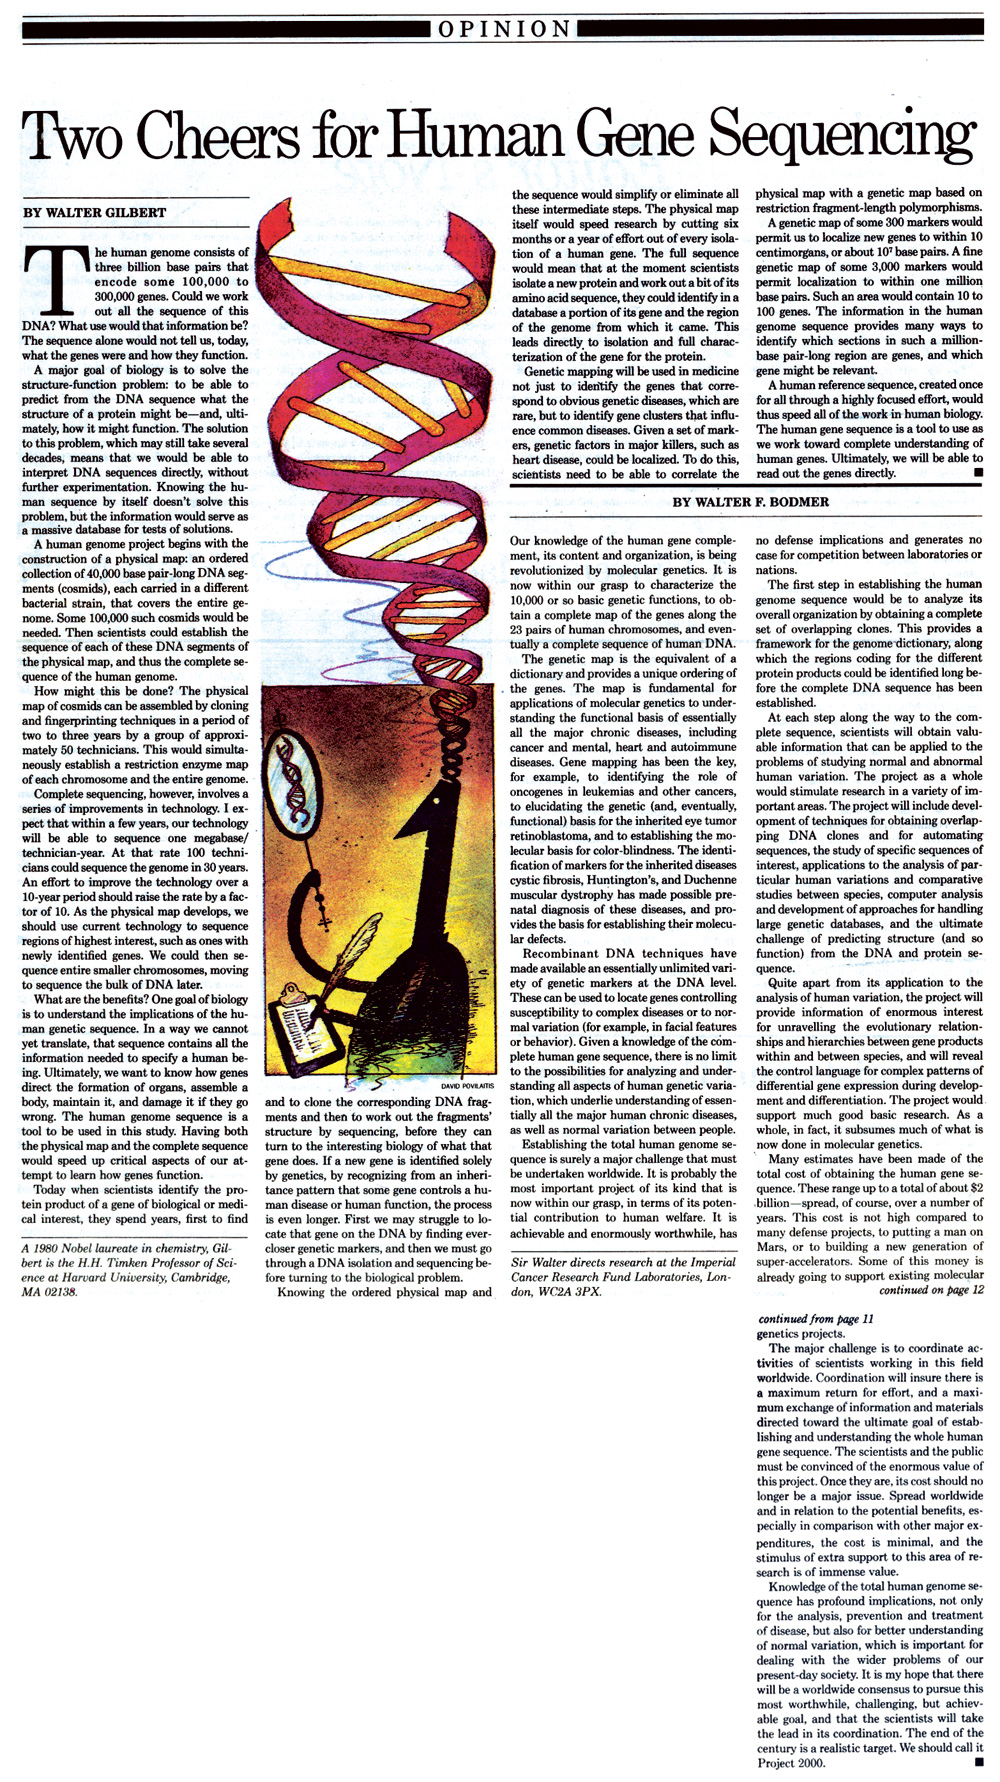 a view on the humane genome project The human genome project (hgp) was an international scientific research project with the goal of determining the sequence of nucleotide base pairs that.